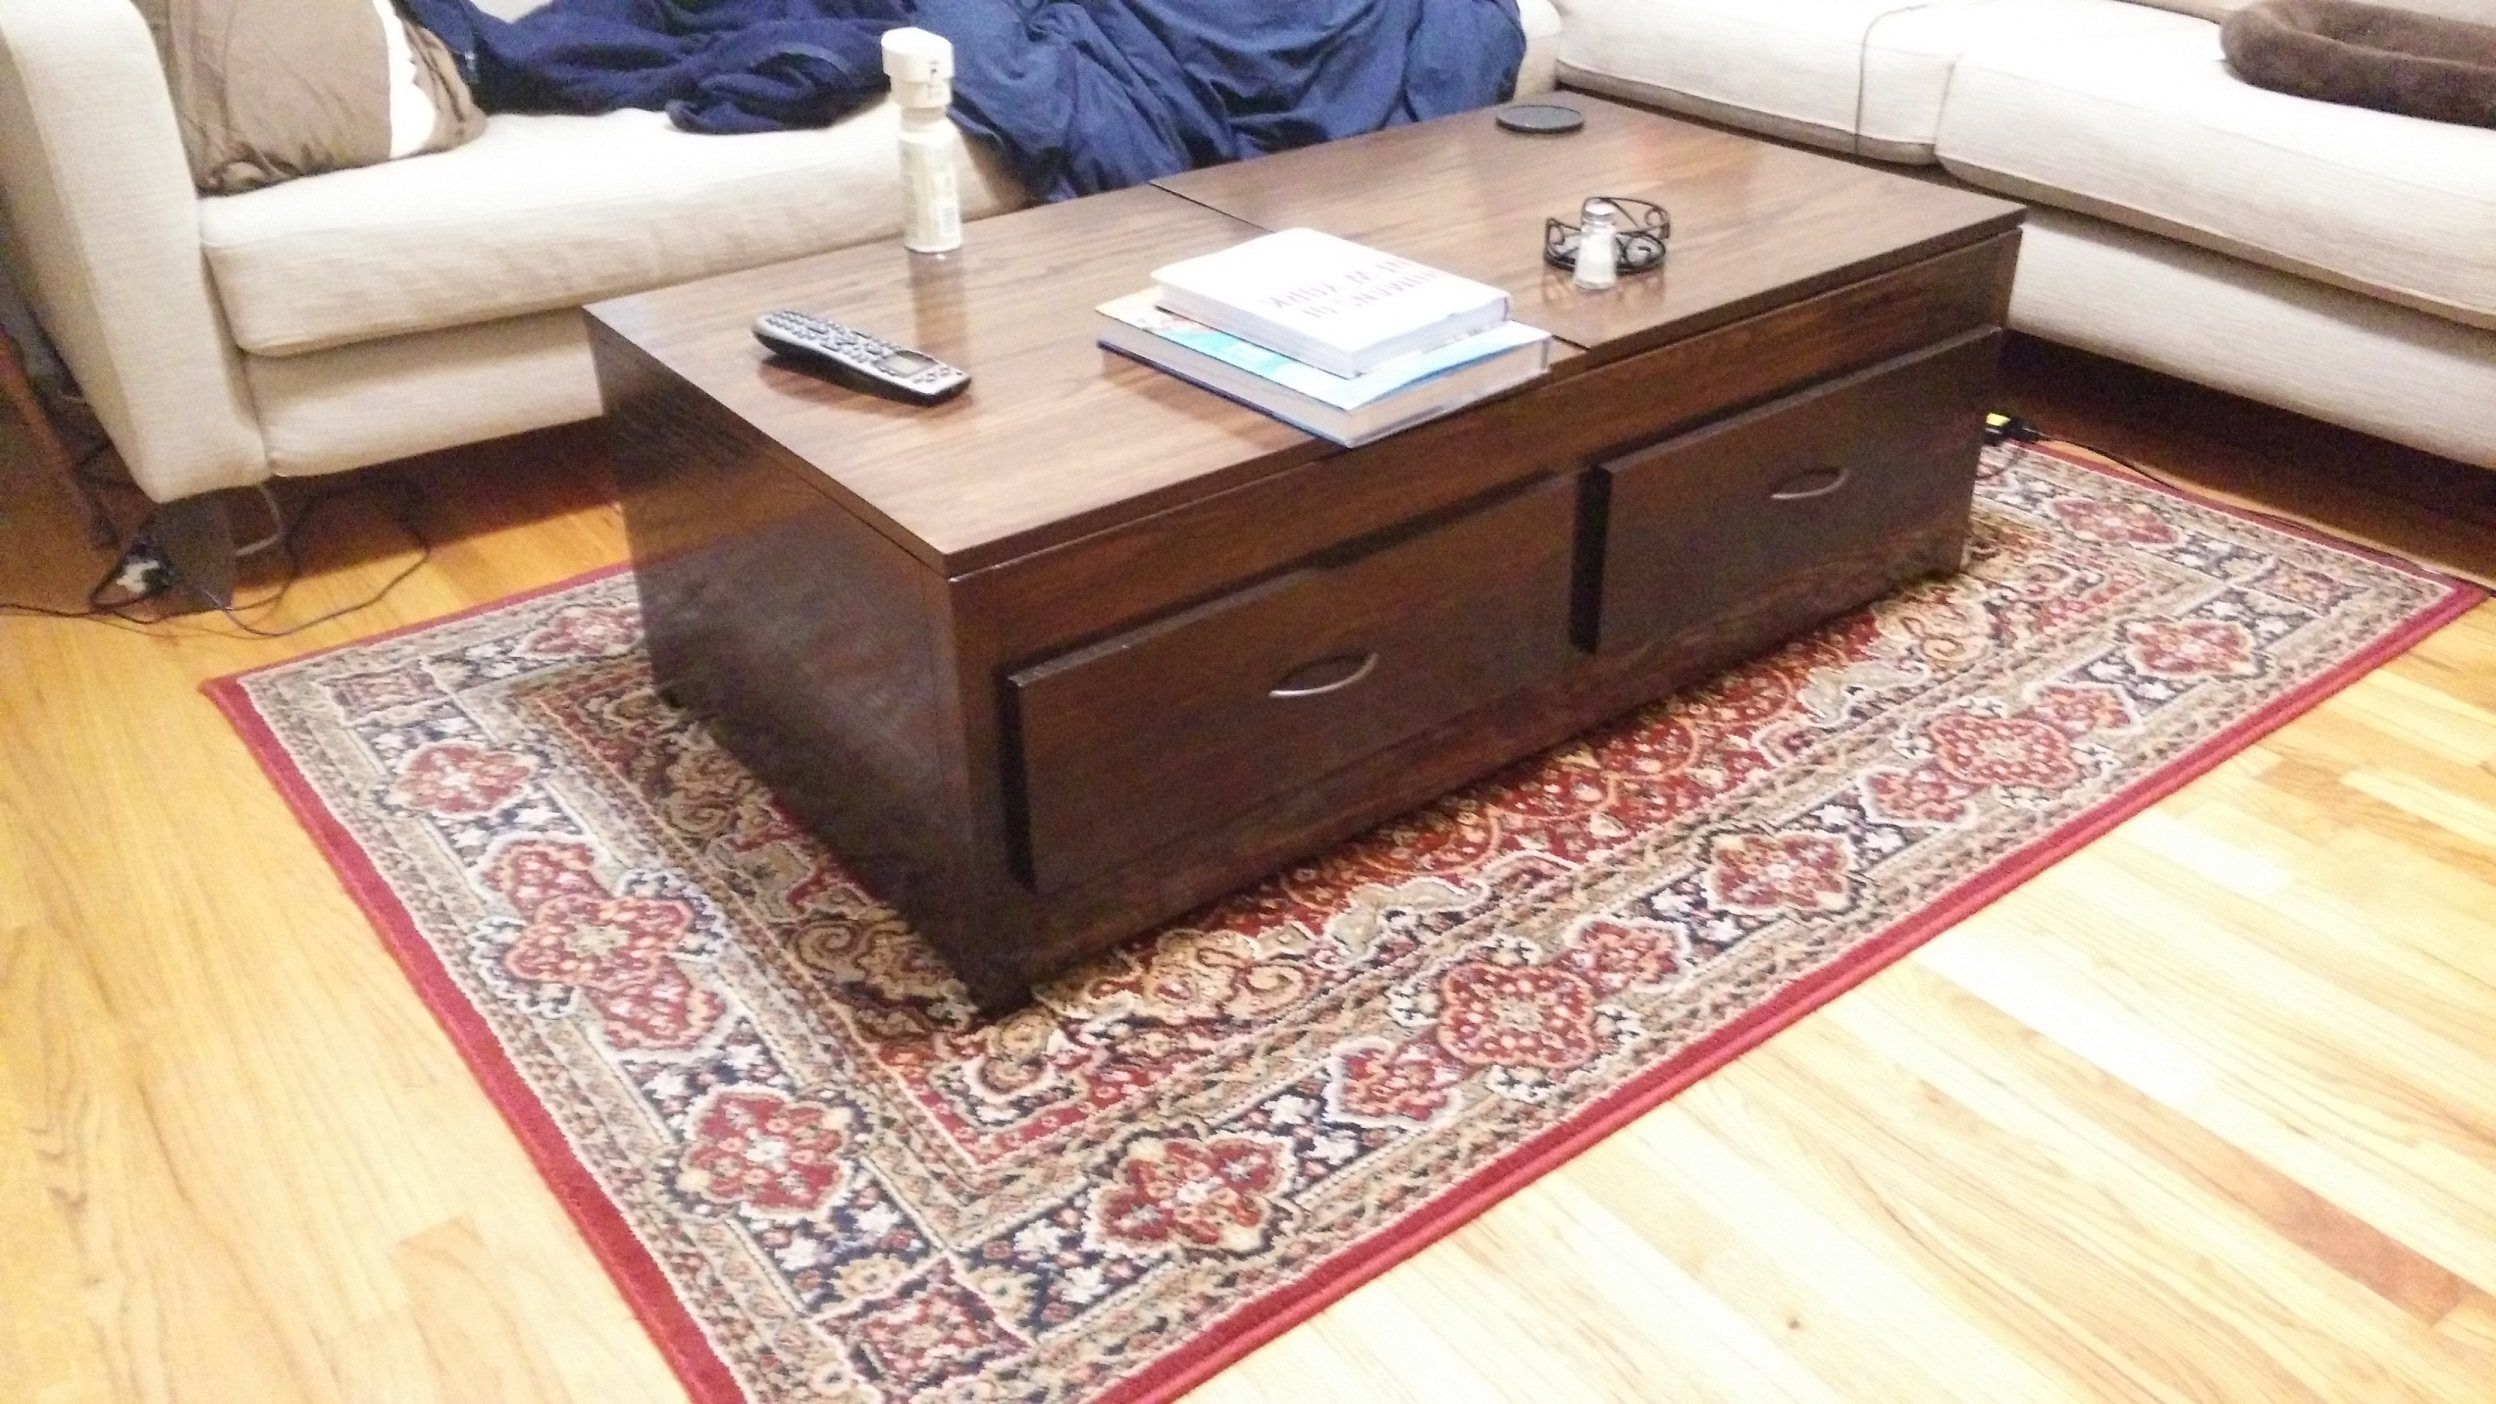 White Lift Up Coffee Table.How To Measure For A Coffee Table Coffee Table Design Ideas Lift